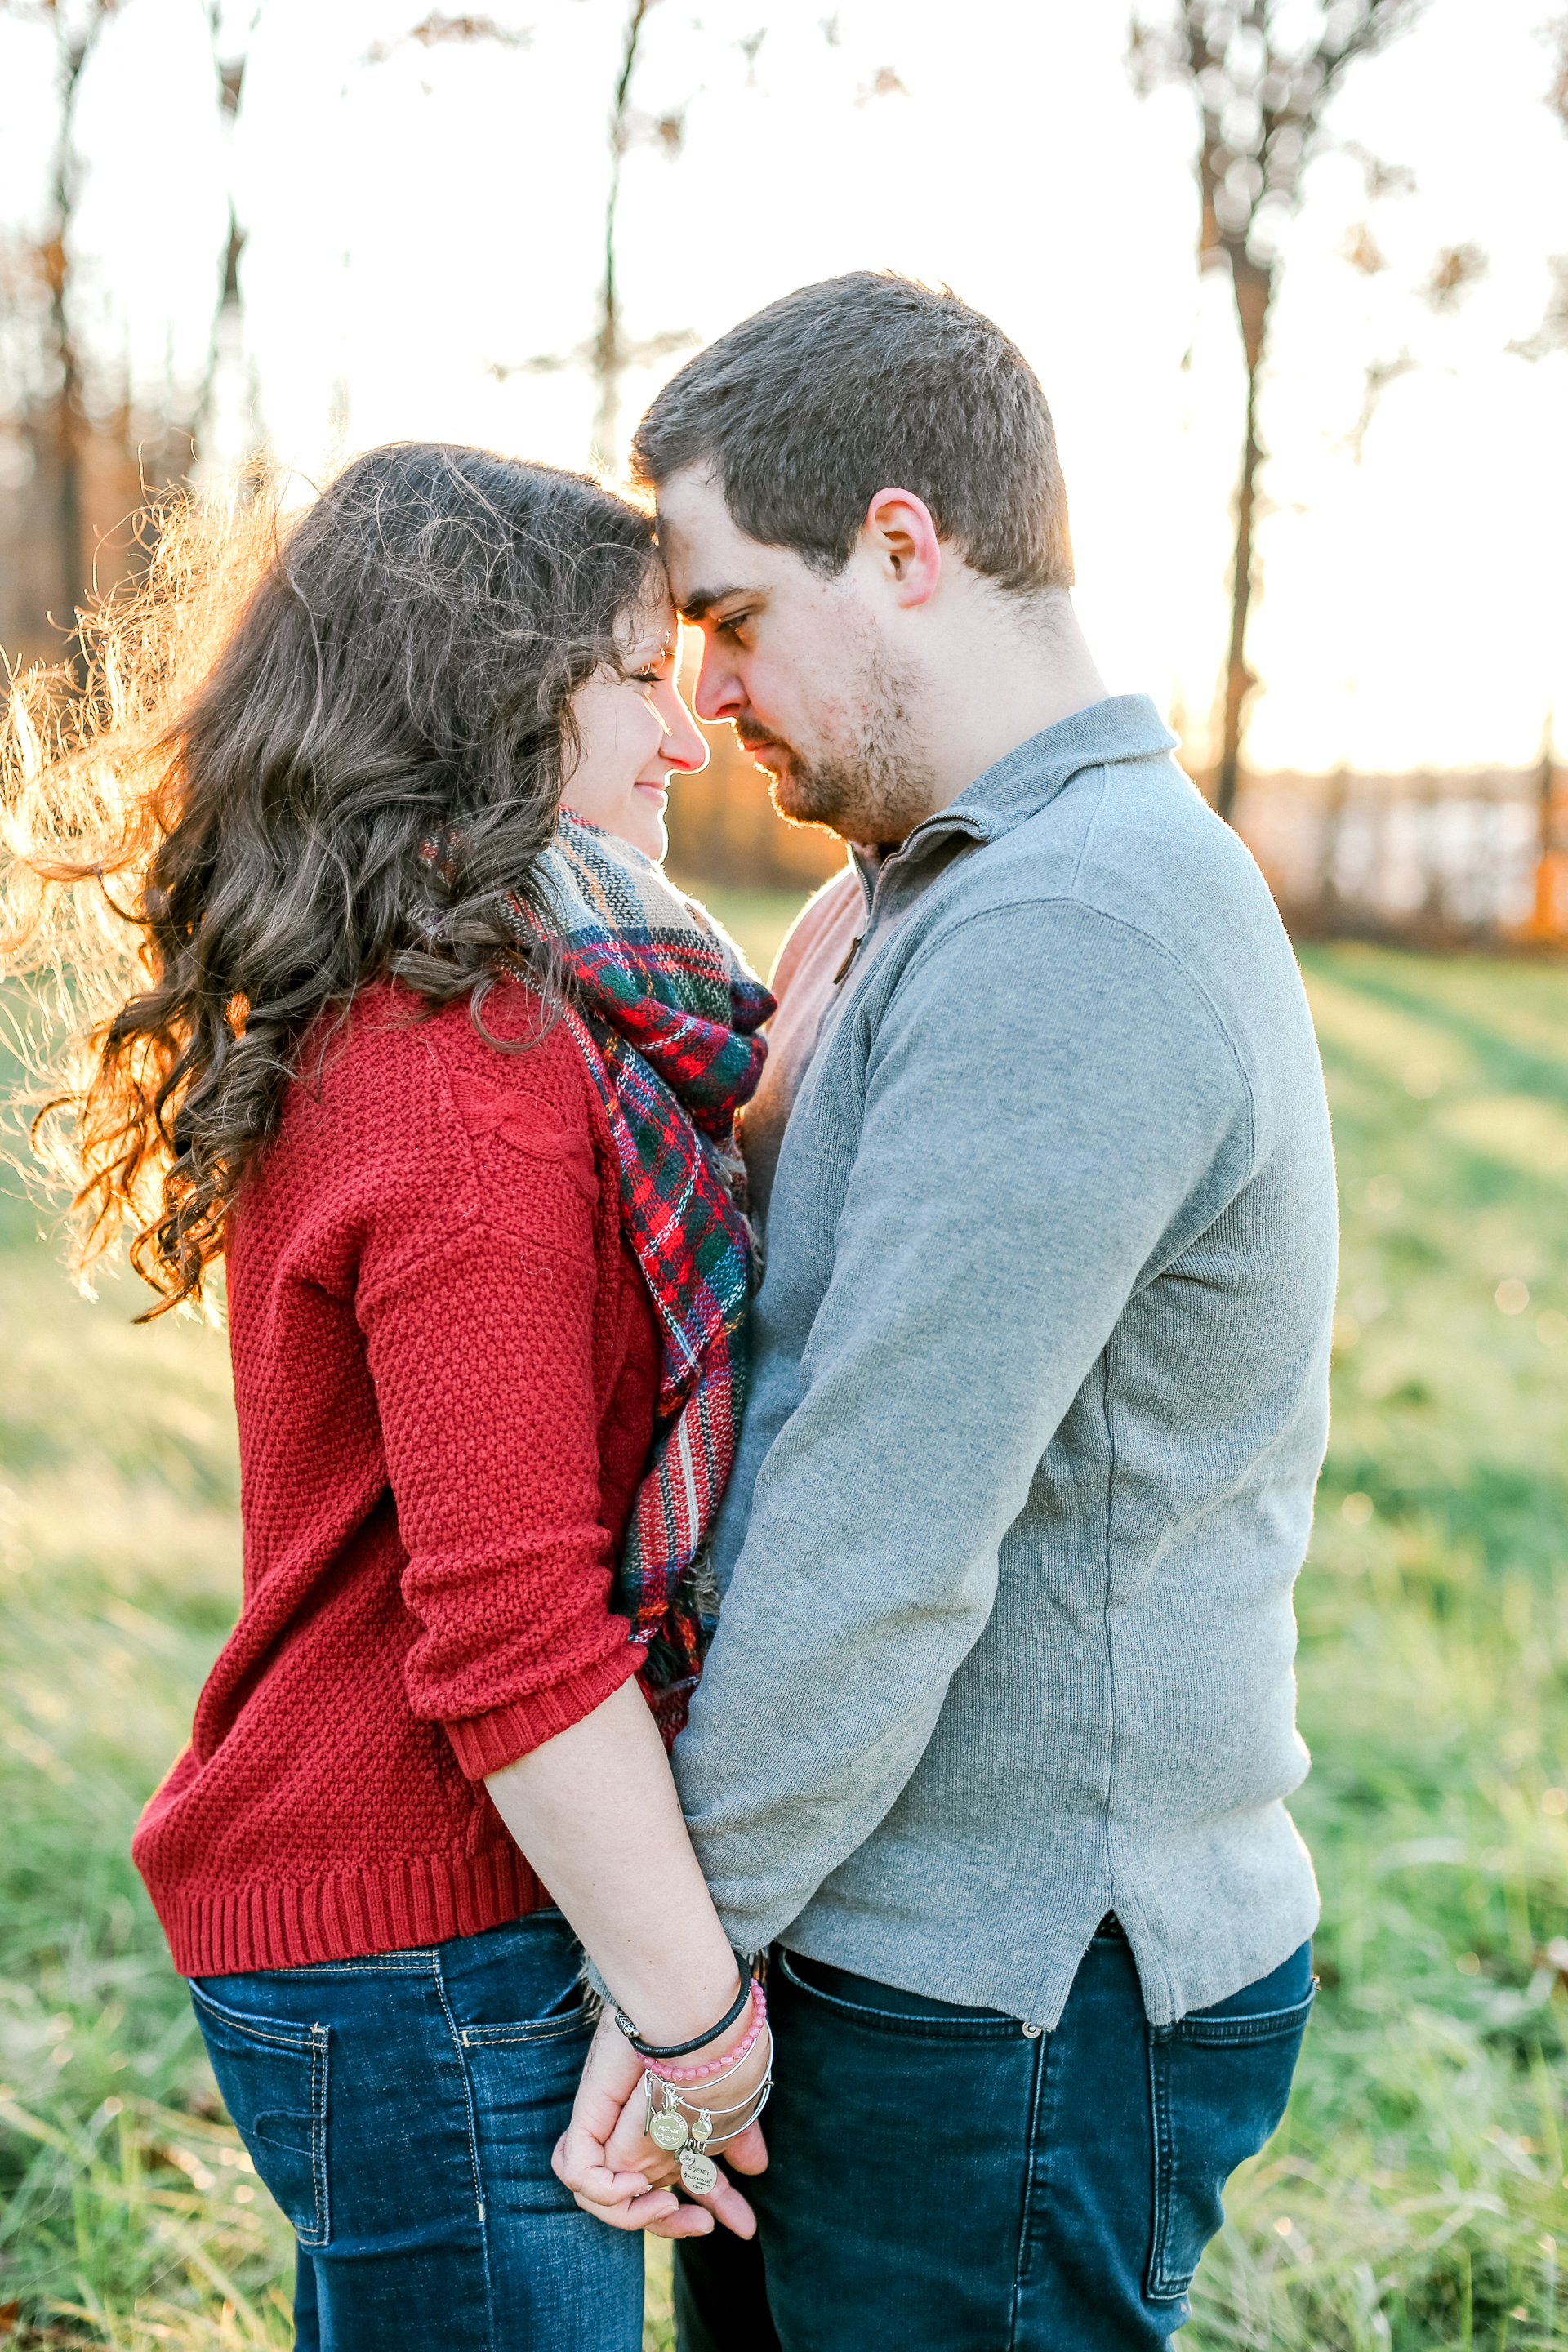 Bucks county Peace Valley Park Doylestown Lehigh Valley fall windy engagement session wedding and lifestyle photographer Lytle Photo Co (83 of 109).jpg